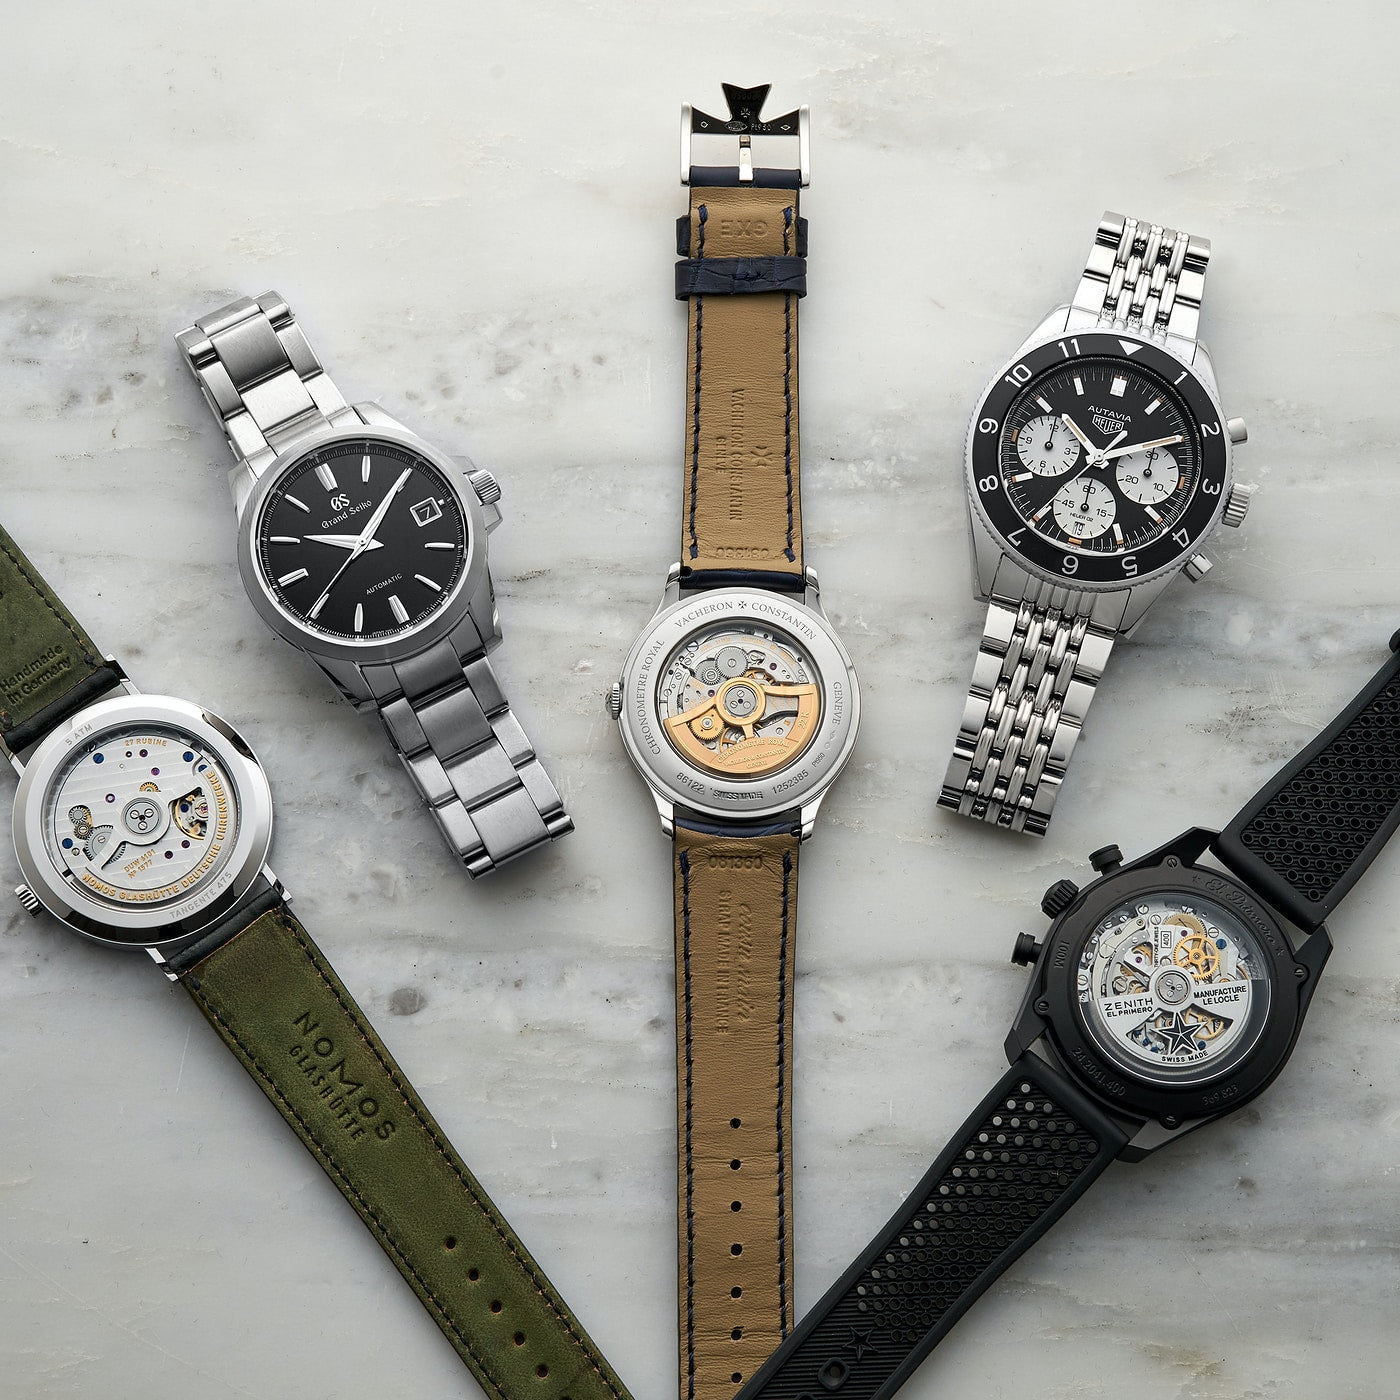 Five in-house watch movements in In-house or ébauche, and does it even matter anymore? For A Collected Man London